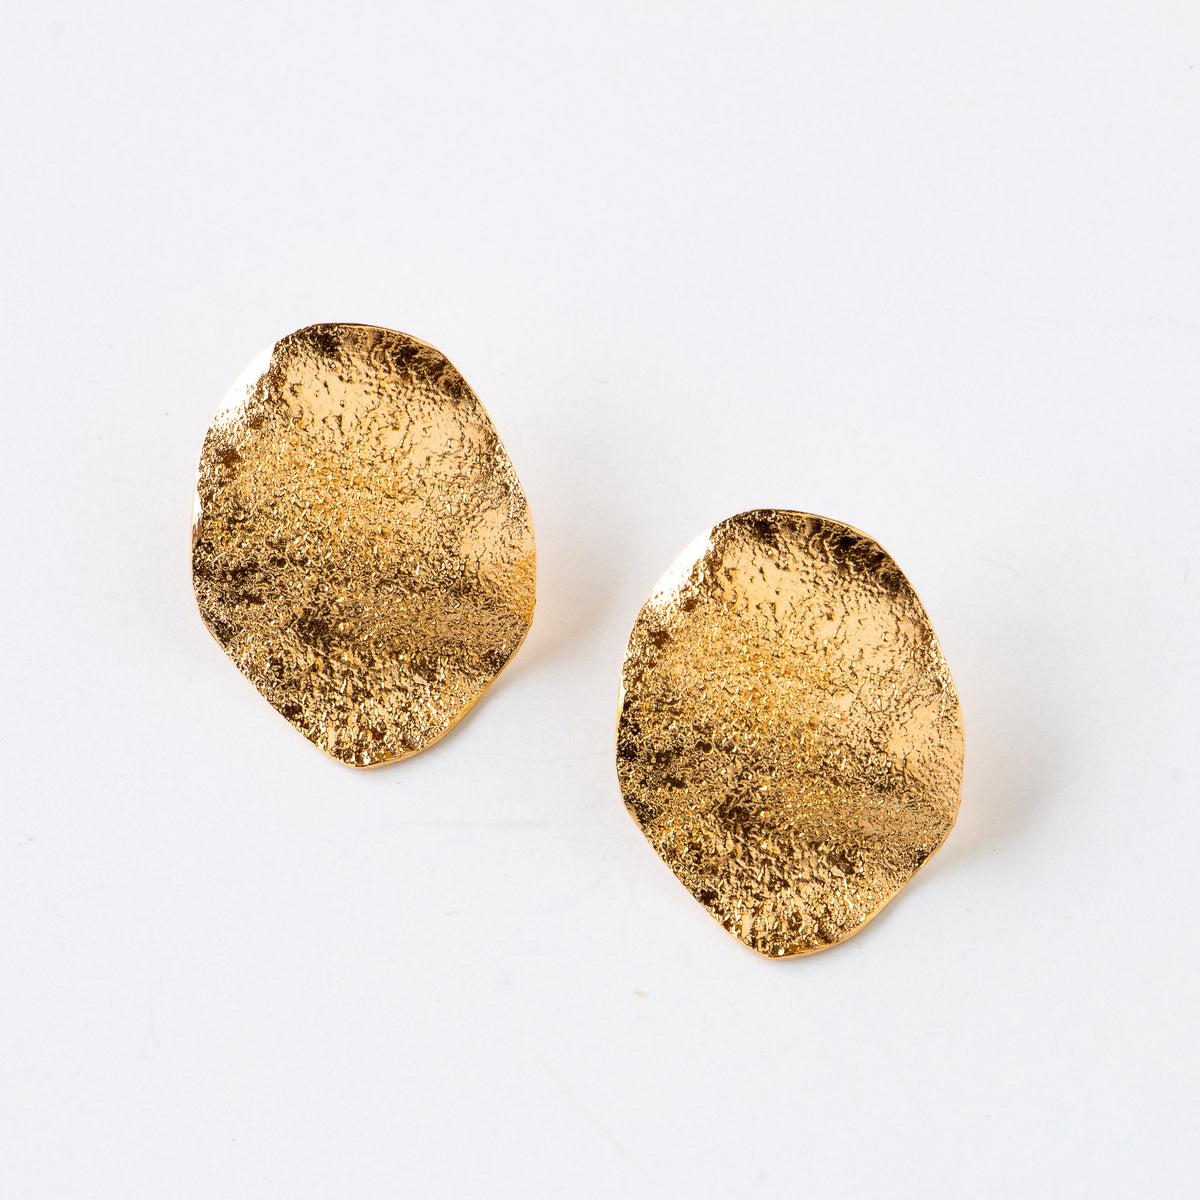 Olas - Handmade Golden Earrings in Silver & Gold - Sold by Chic & Basta